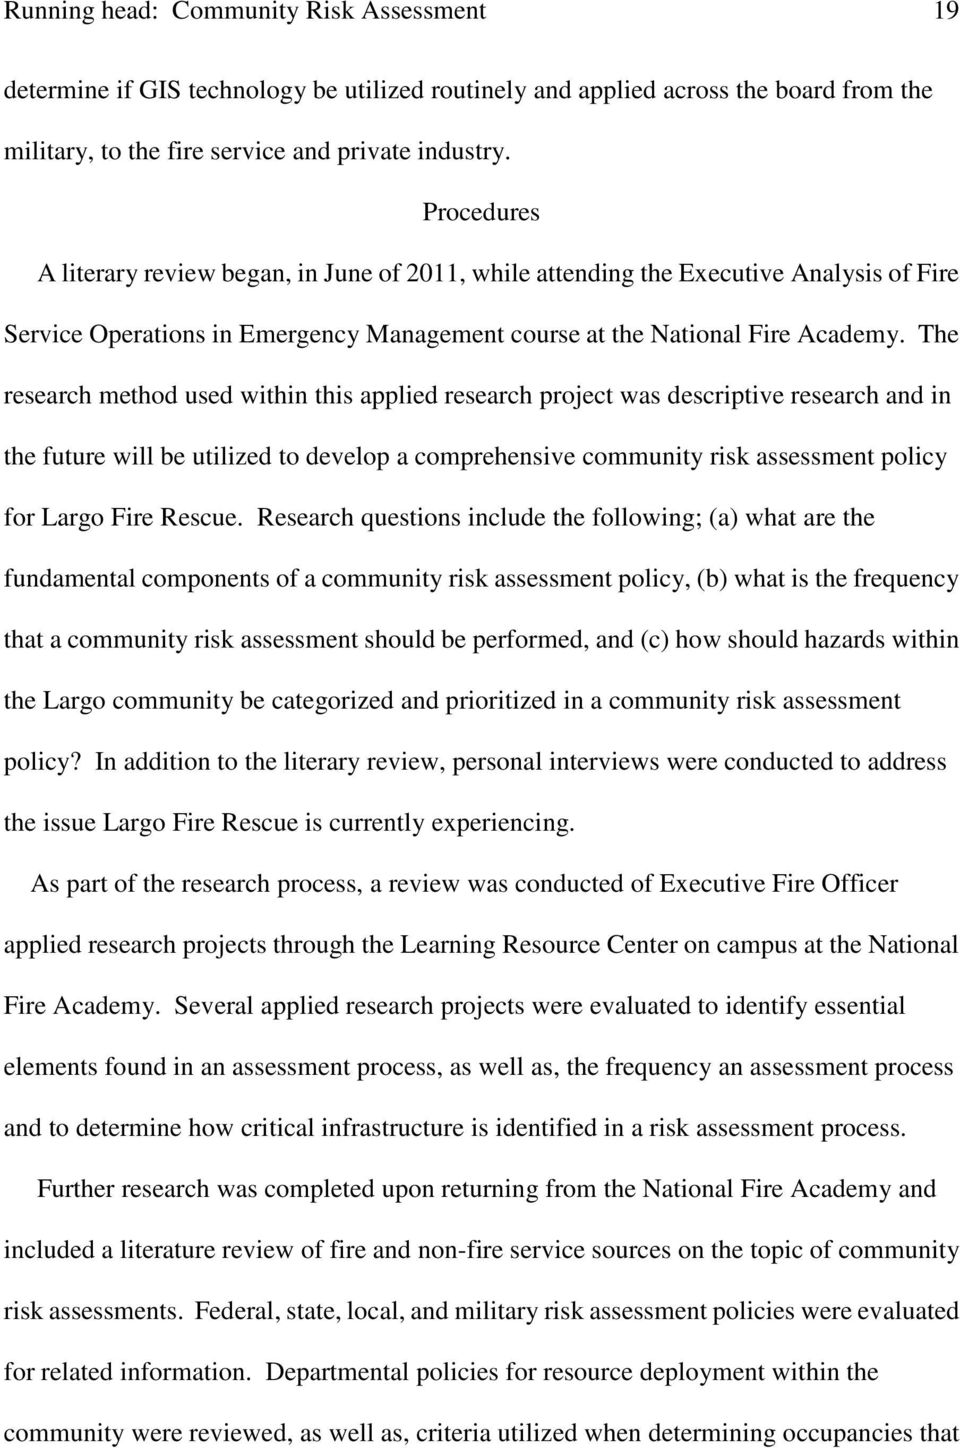 The research method used within this applied research project was descriptive research and in the future will be utilized to develop a comprehensive community risk assessment policy for Largo Fire